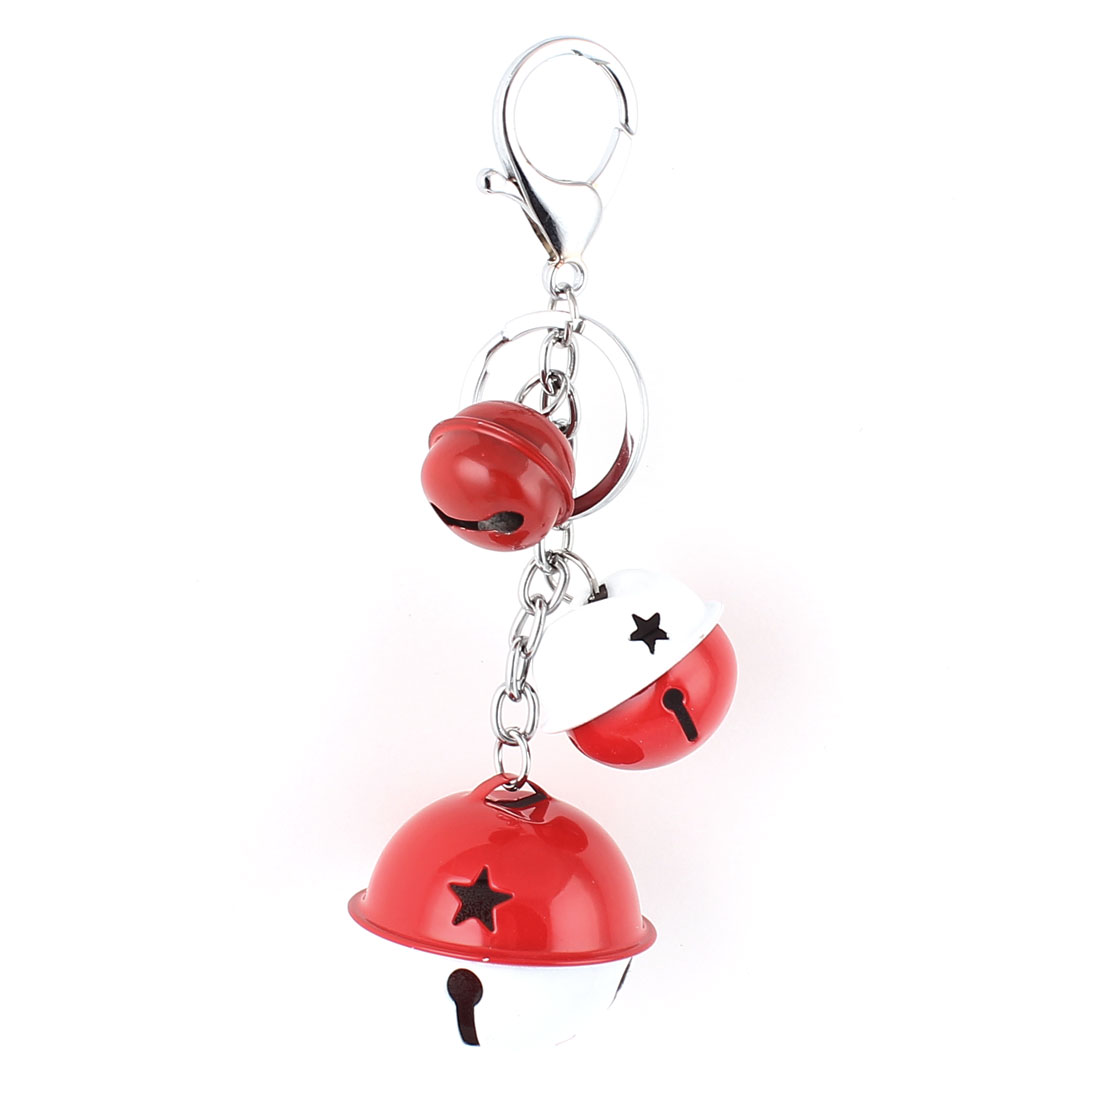 Bells Pendant Swivel Lobster Clasp Keyring Keychain Key Chain Ring Red White